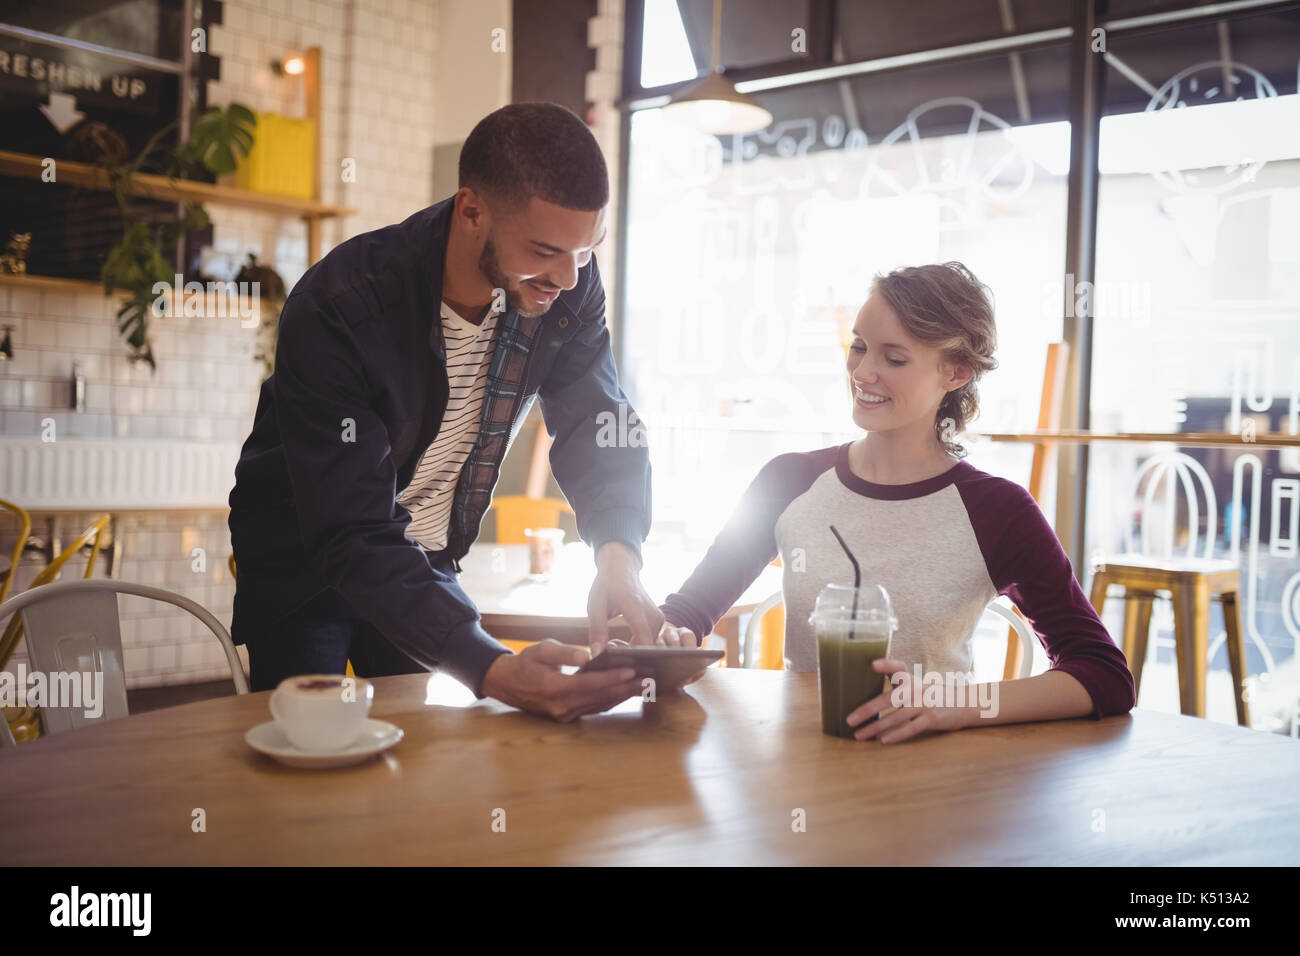 Young man showing digital tablet to woman at coffee shop Stock Photo